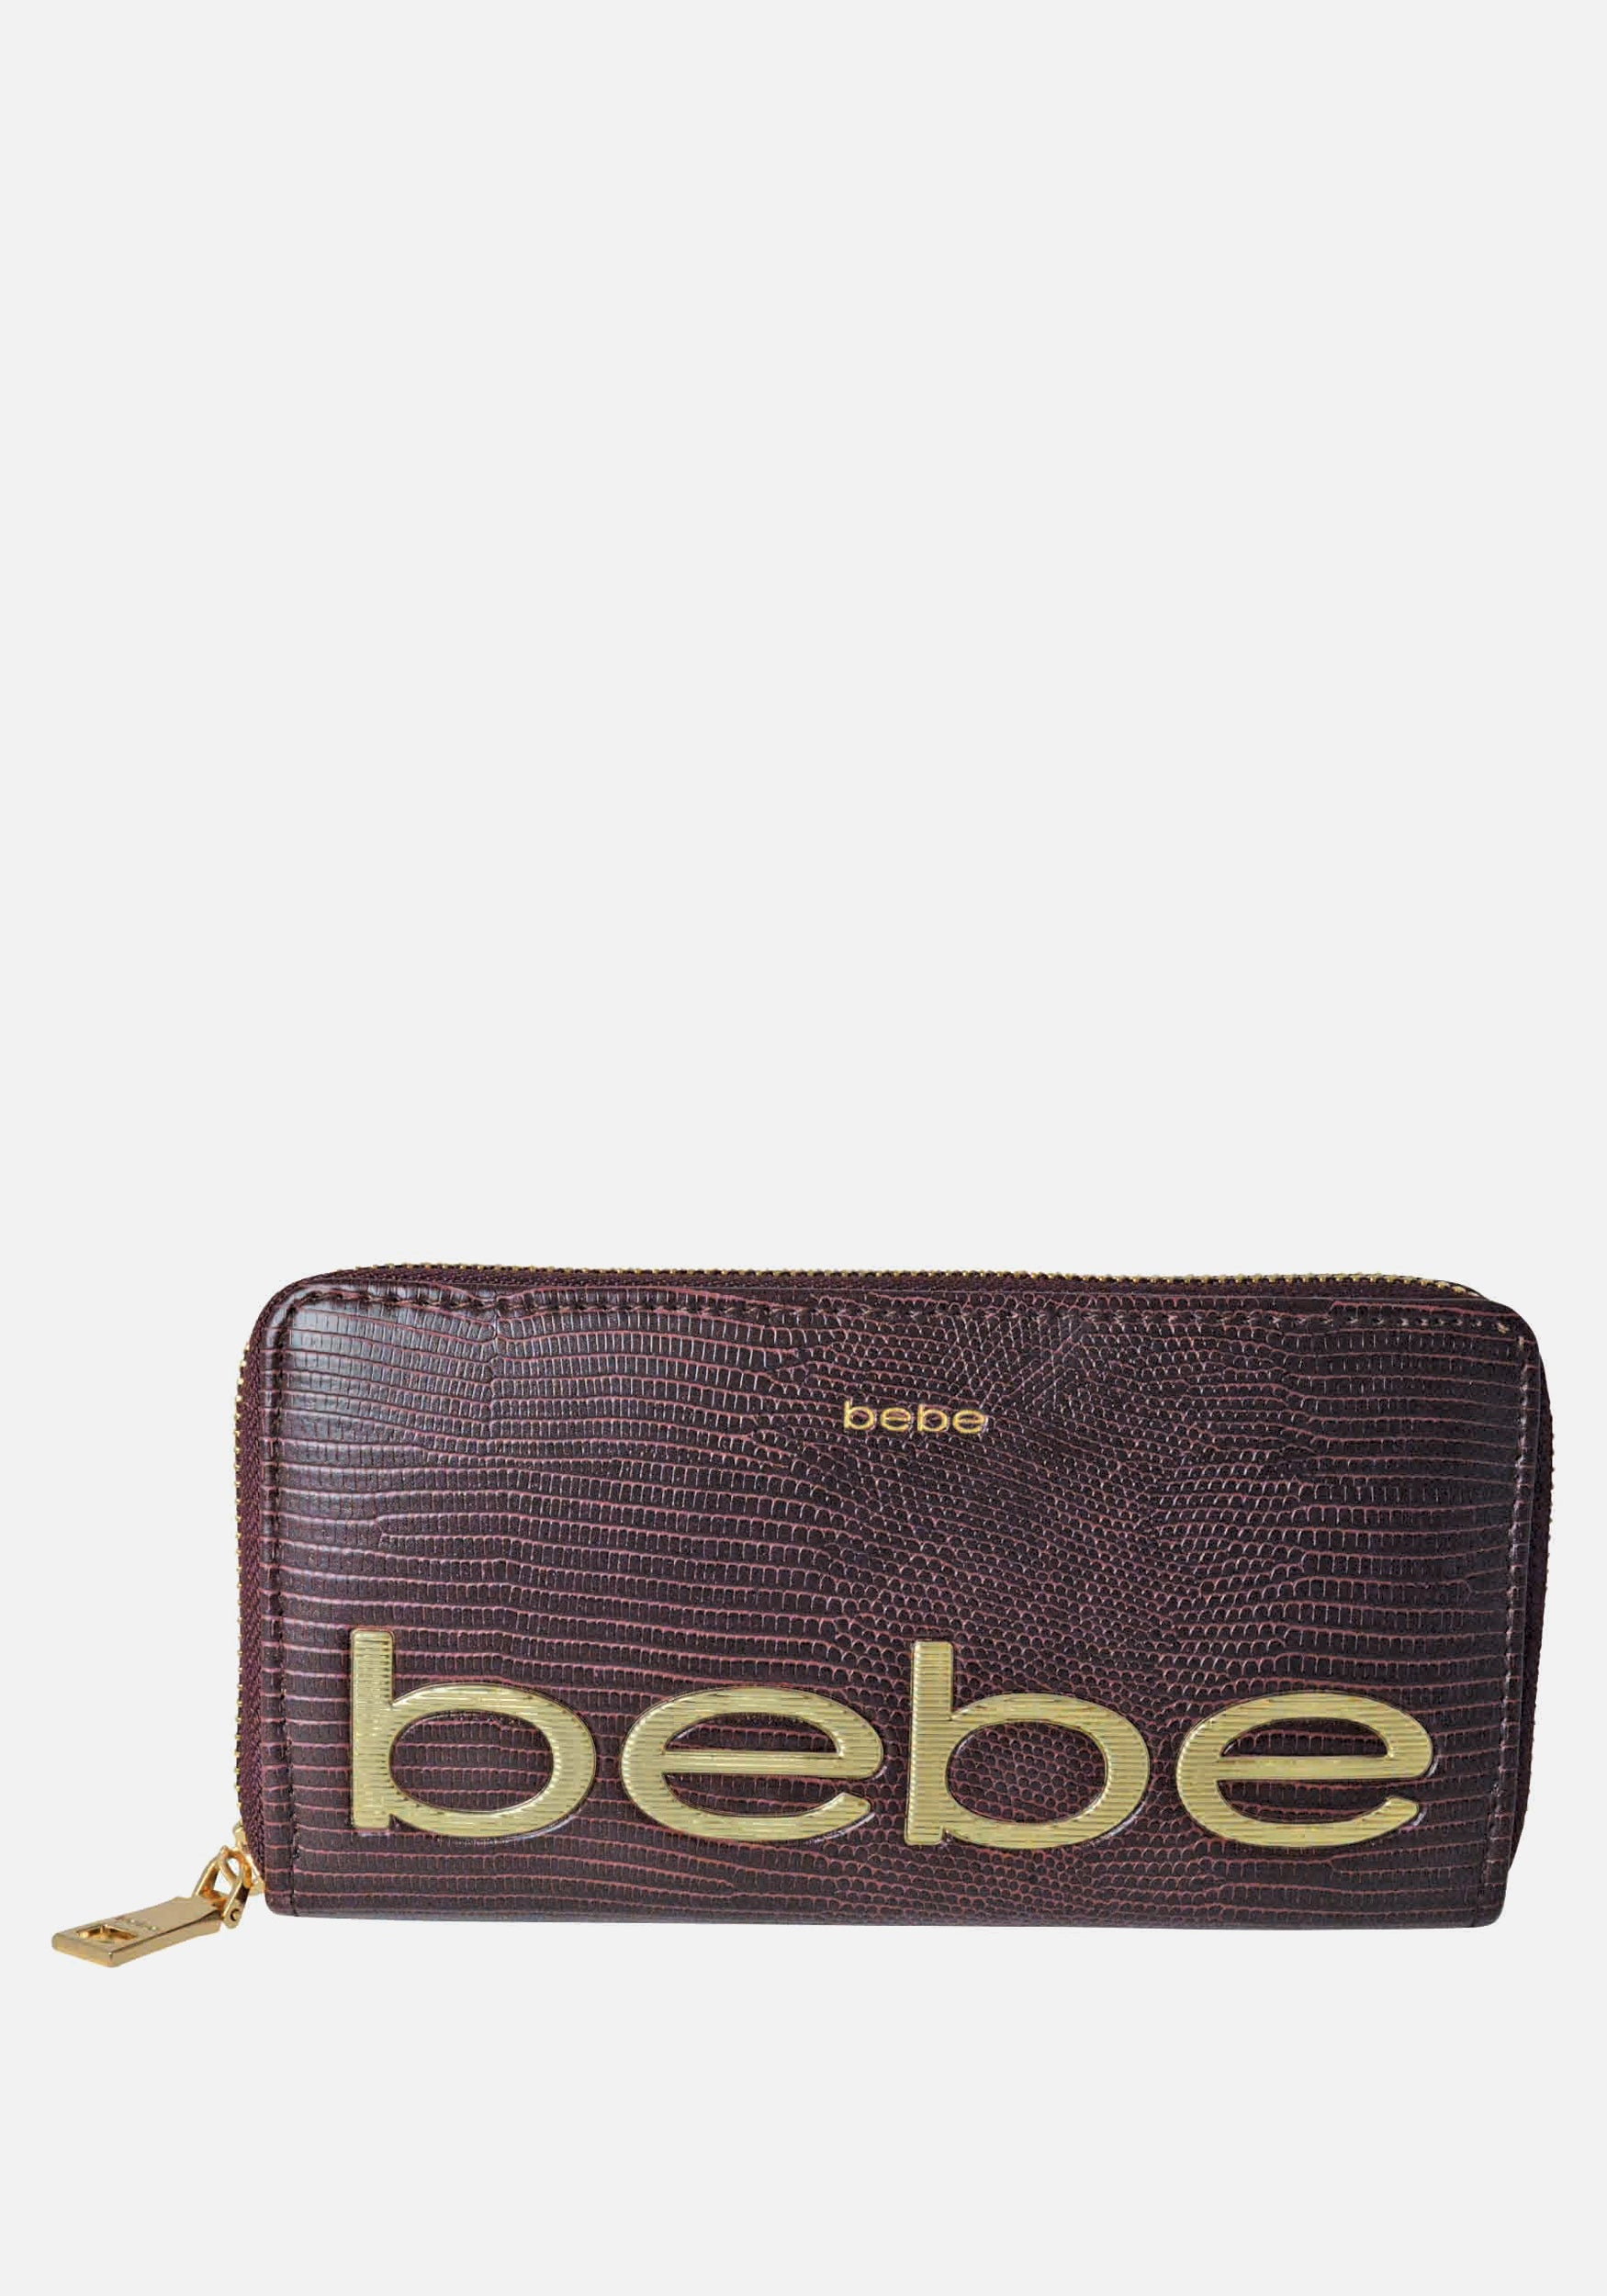 Bebe Women's Fabiola Stamped Lizard Wallet in Wine Polyester